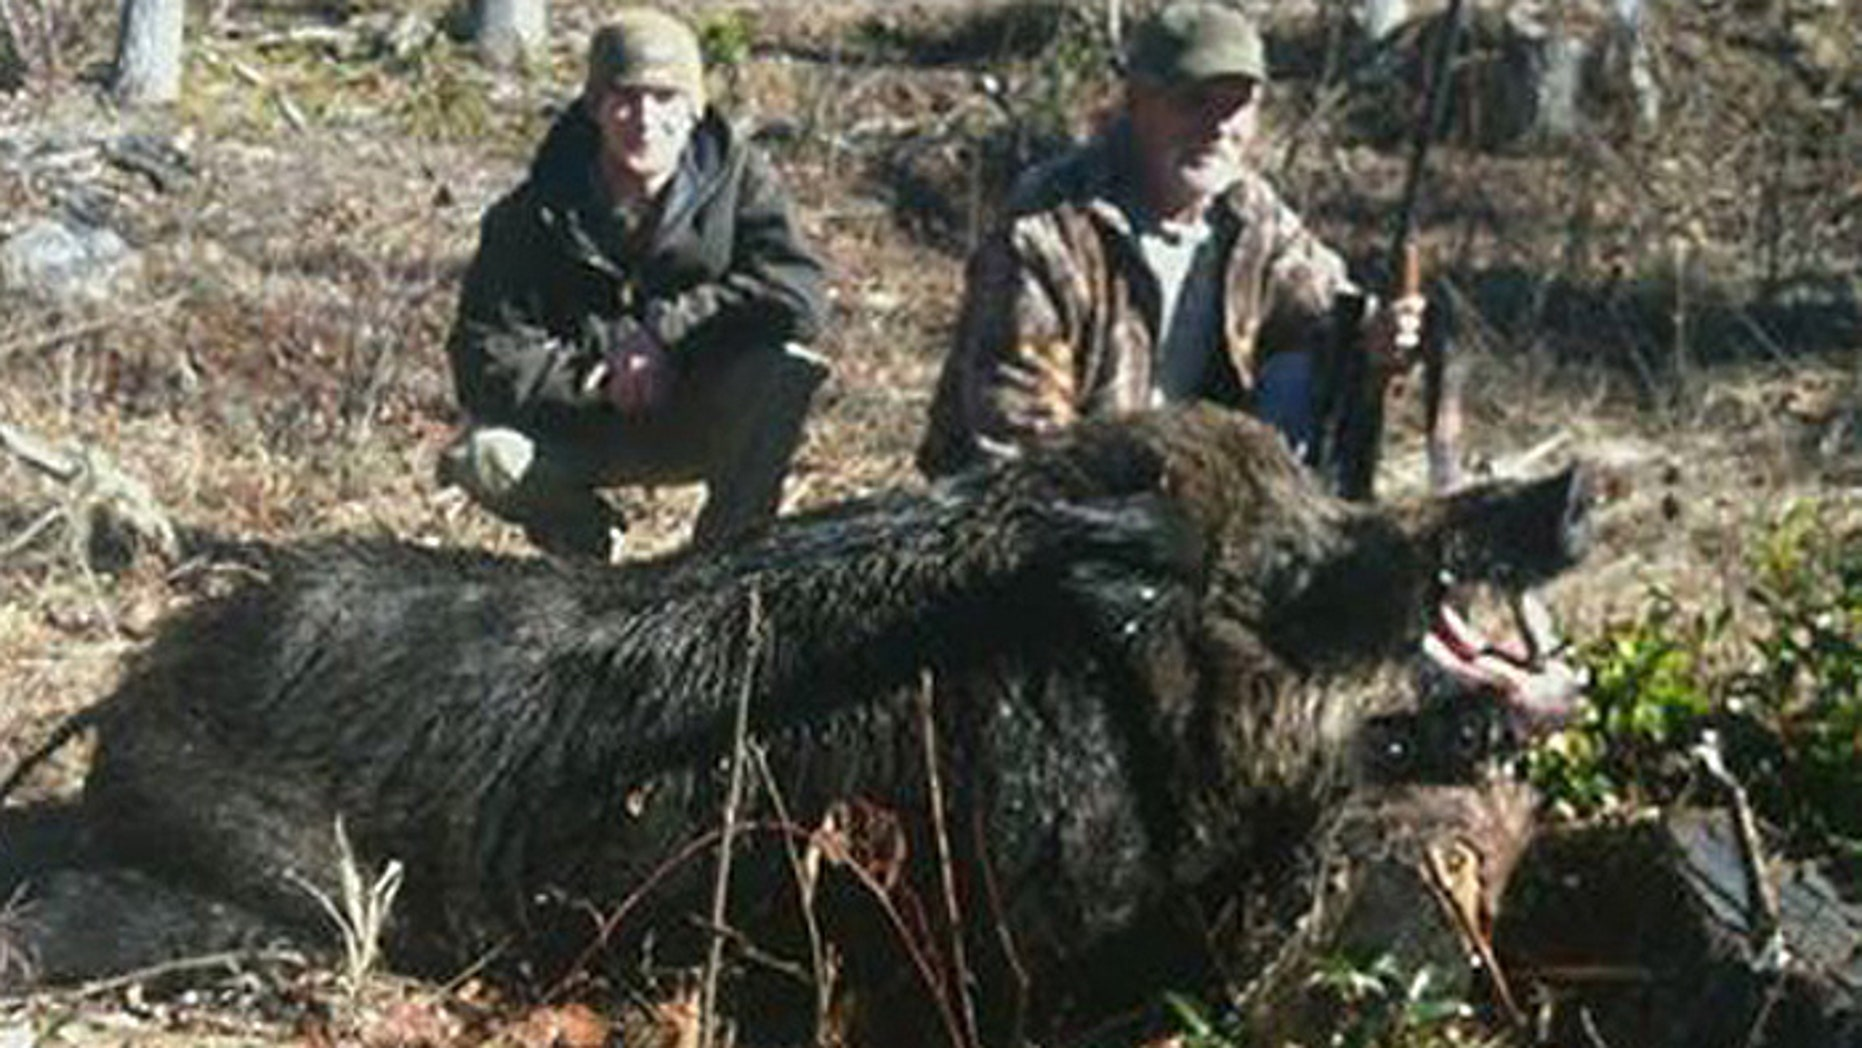 Bruce Florence and his son, Jonathan Florence, bagged this enormous wild boar in North Carolina earlier this month.